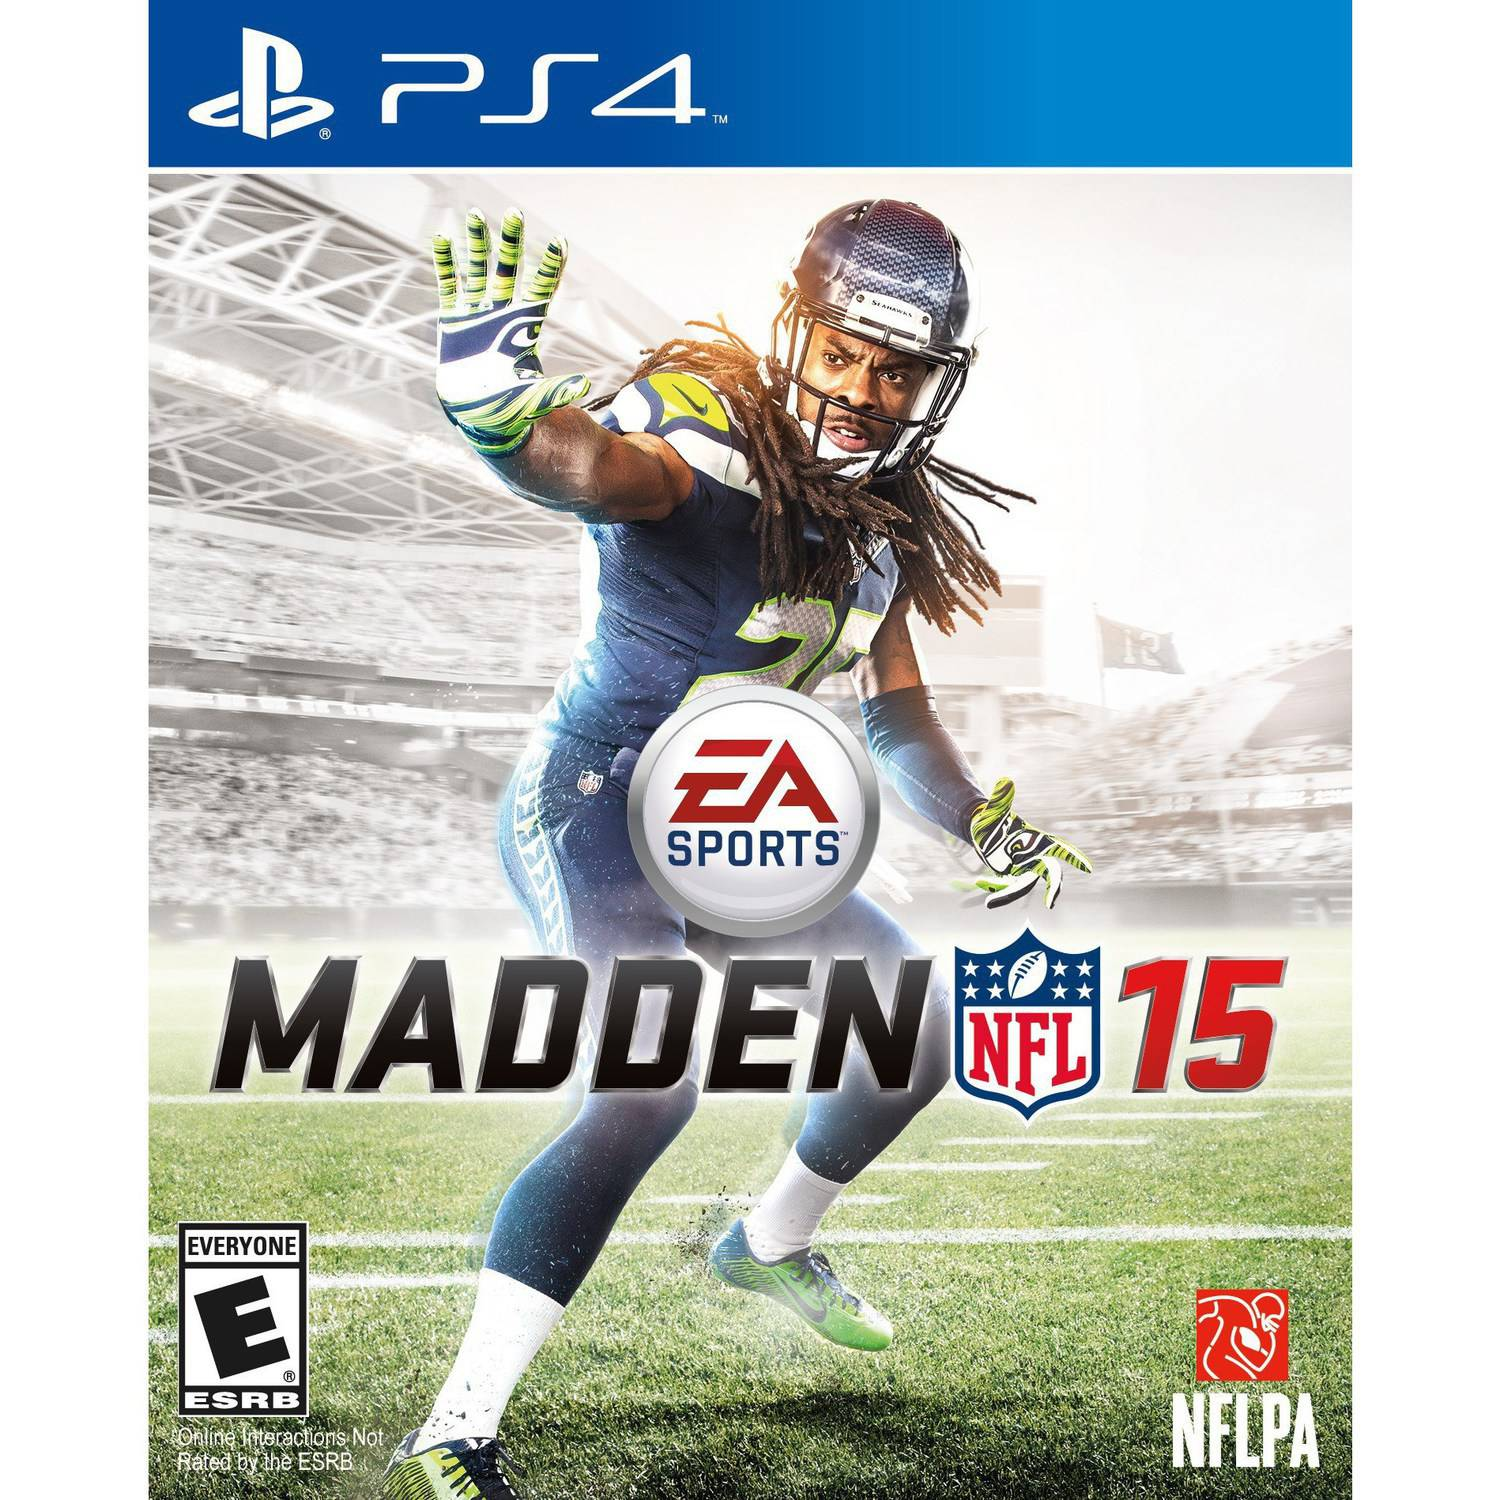 MADDEN NFL 15 (PS4) - Pre-Owned